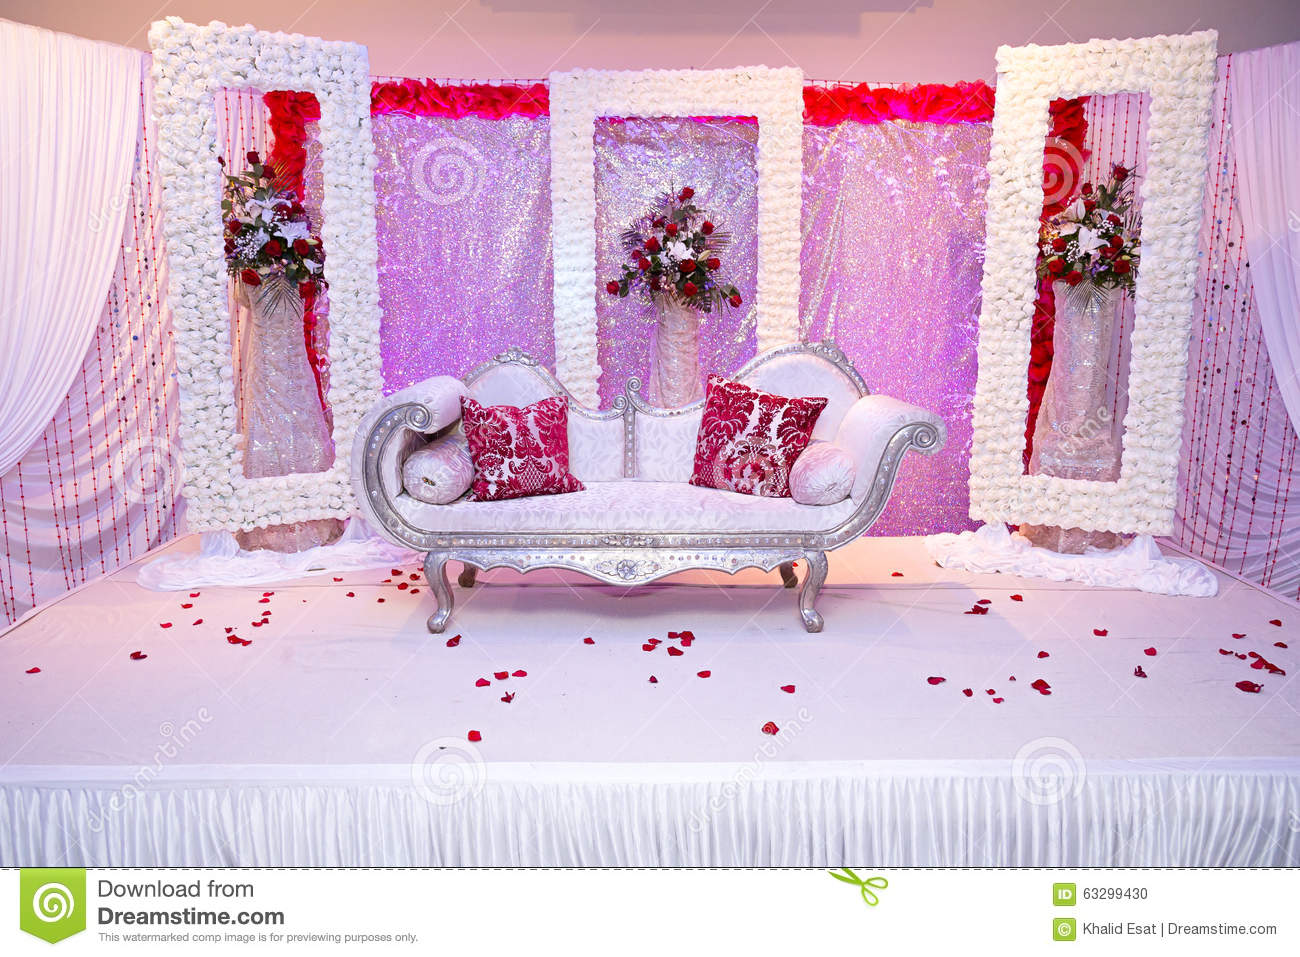 Red themed wedding stage stock photo. Image of wedding - 63299430